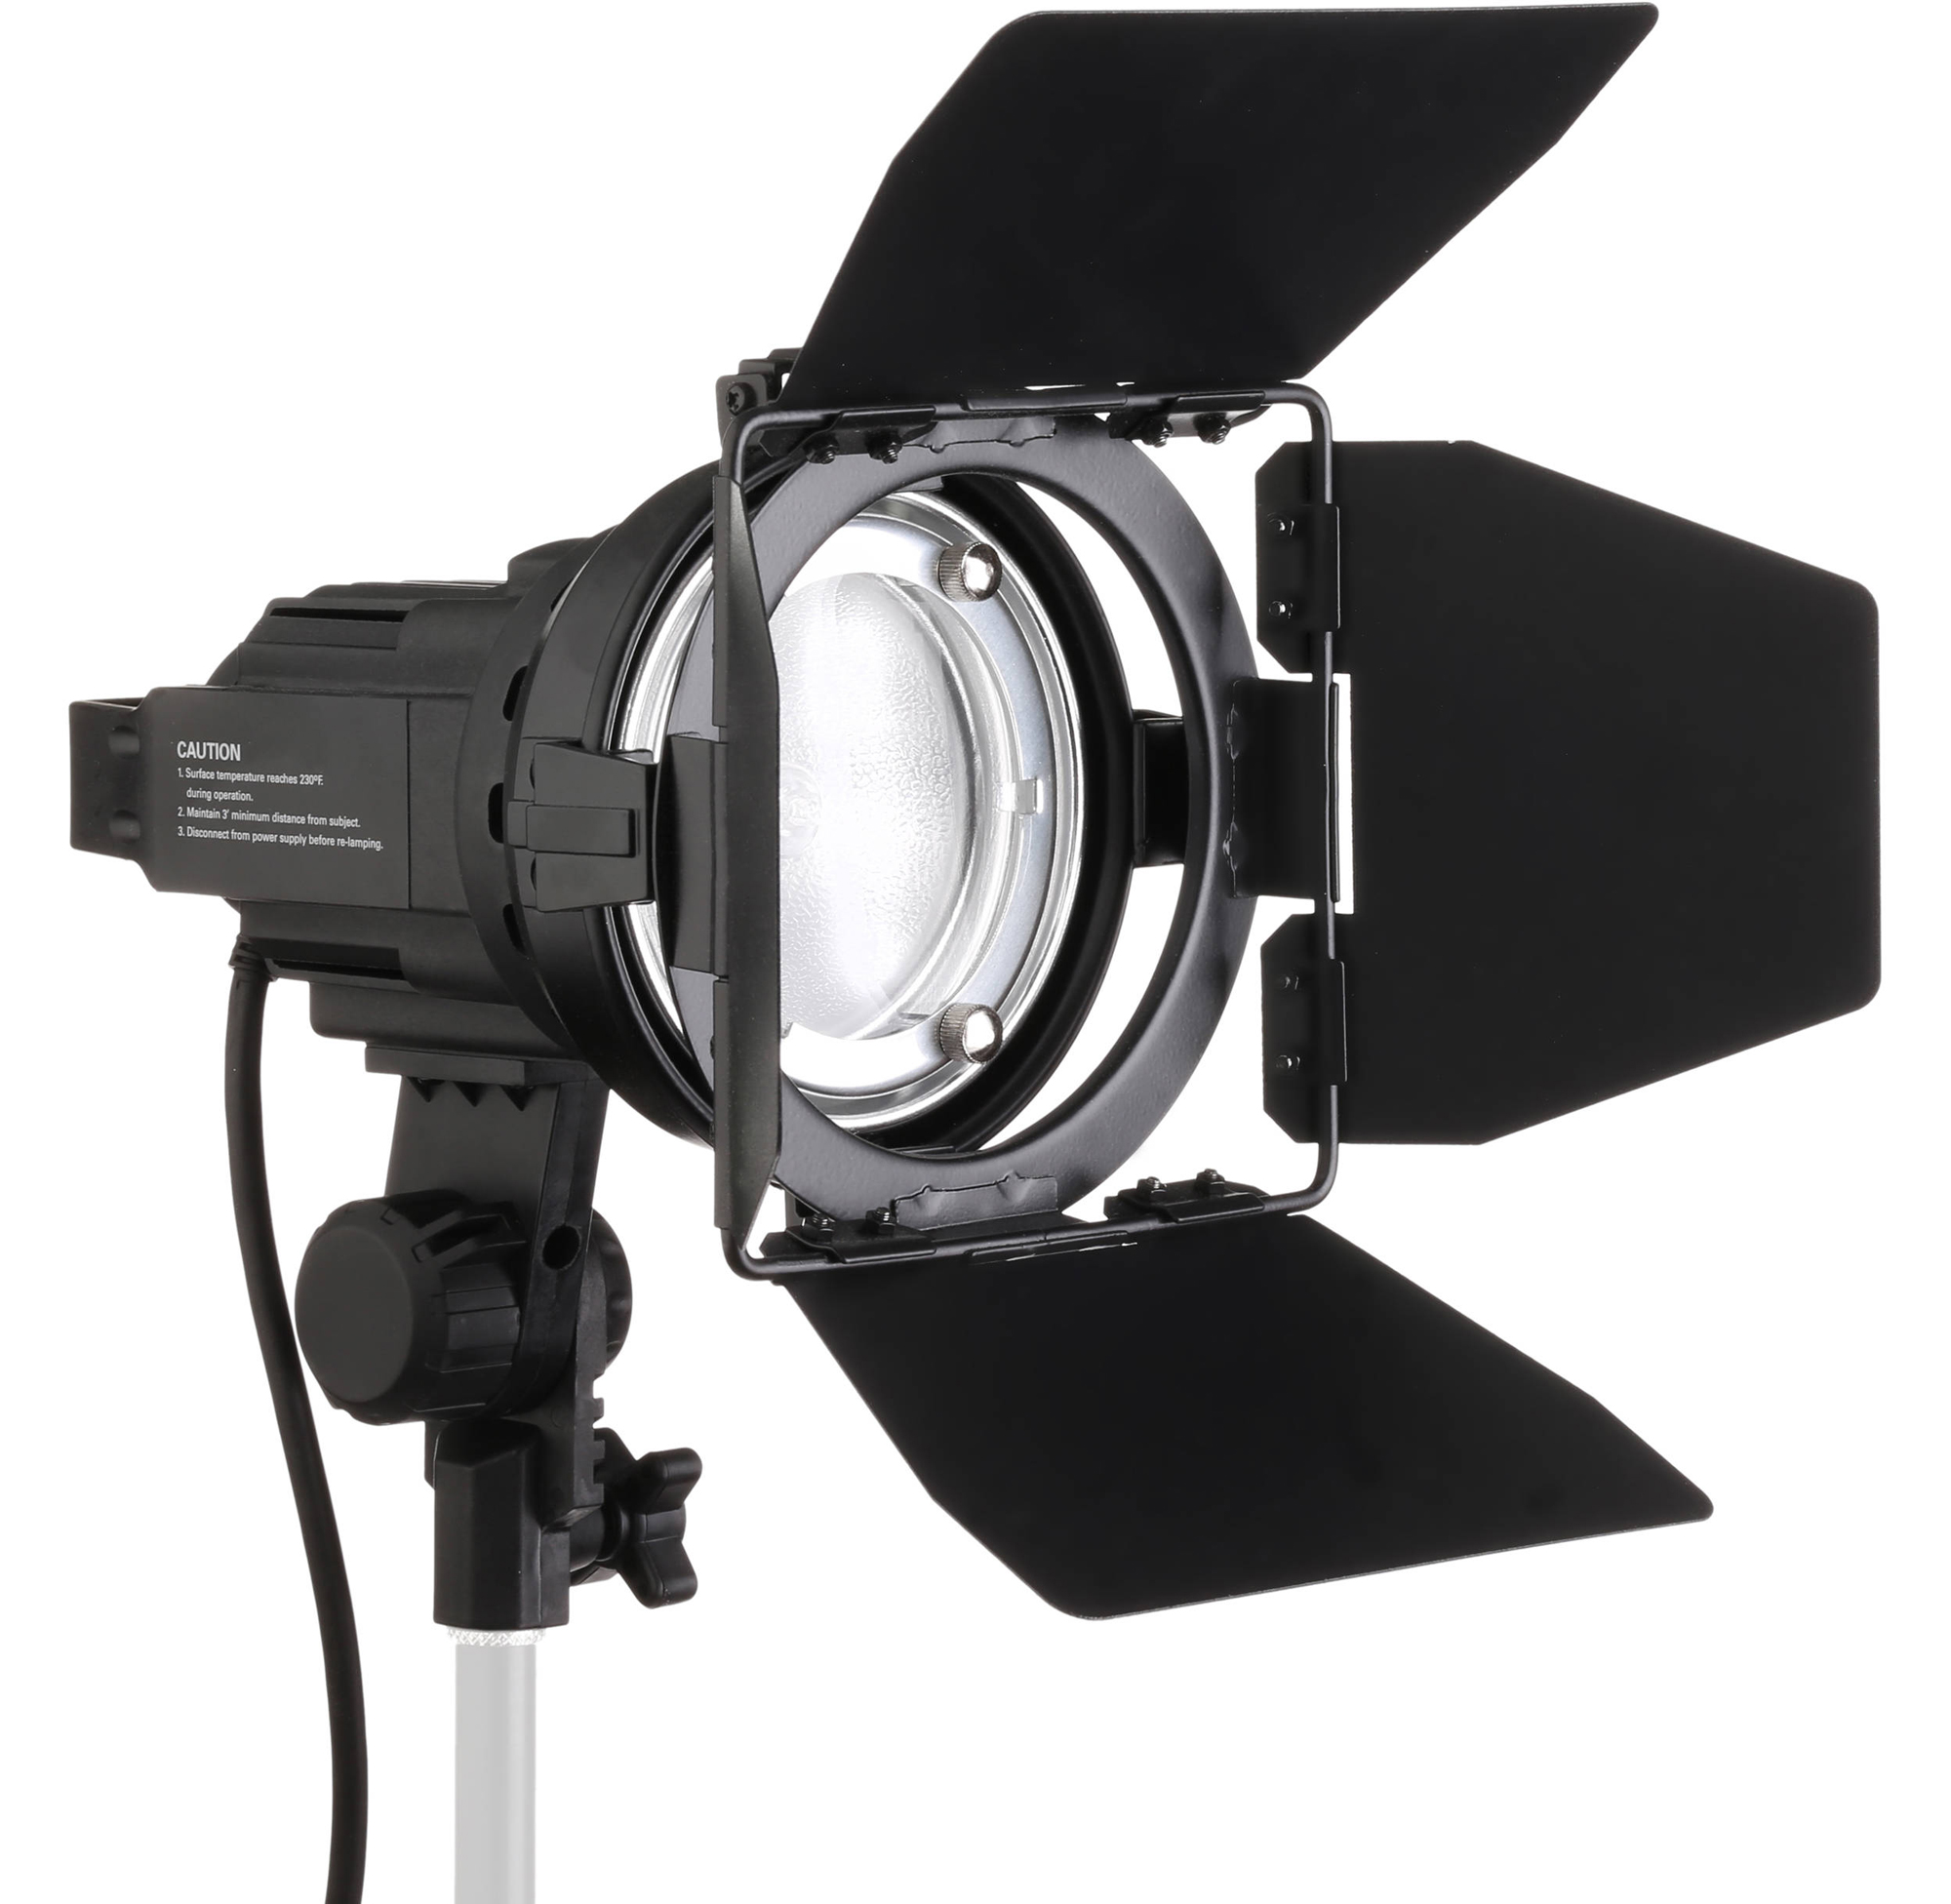 sc 1 st  Bu0026H & 14 Recommended Lighting Kits for Photography | Bu0026H Explora